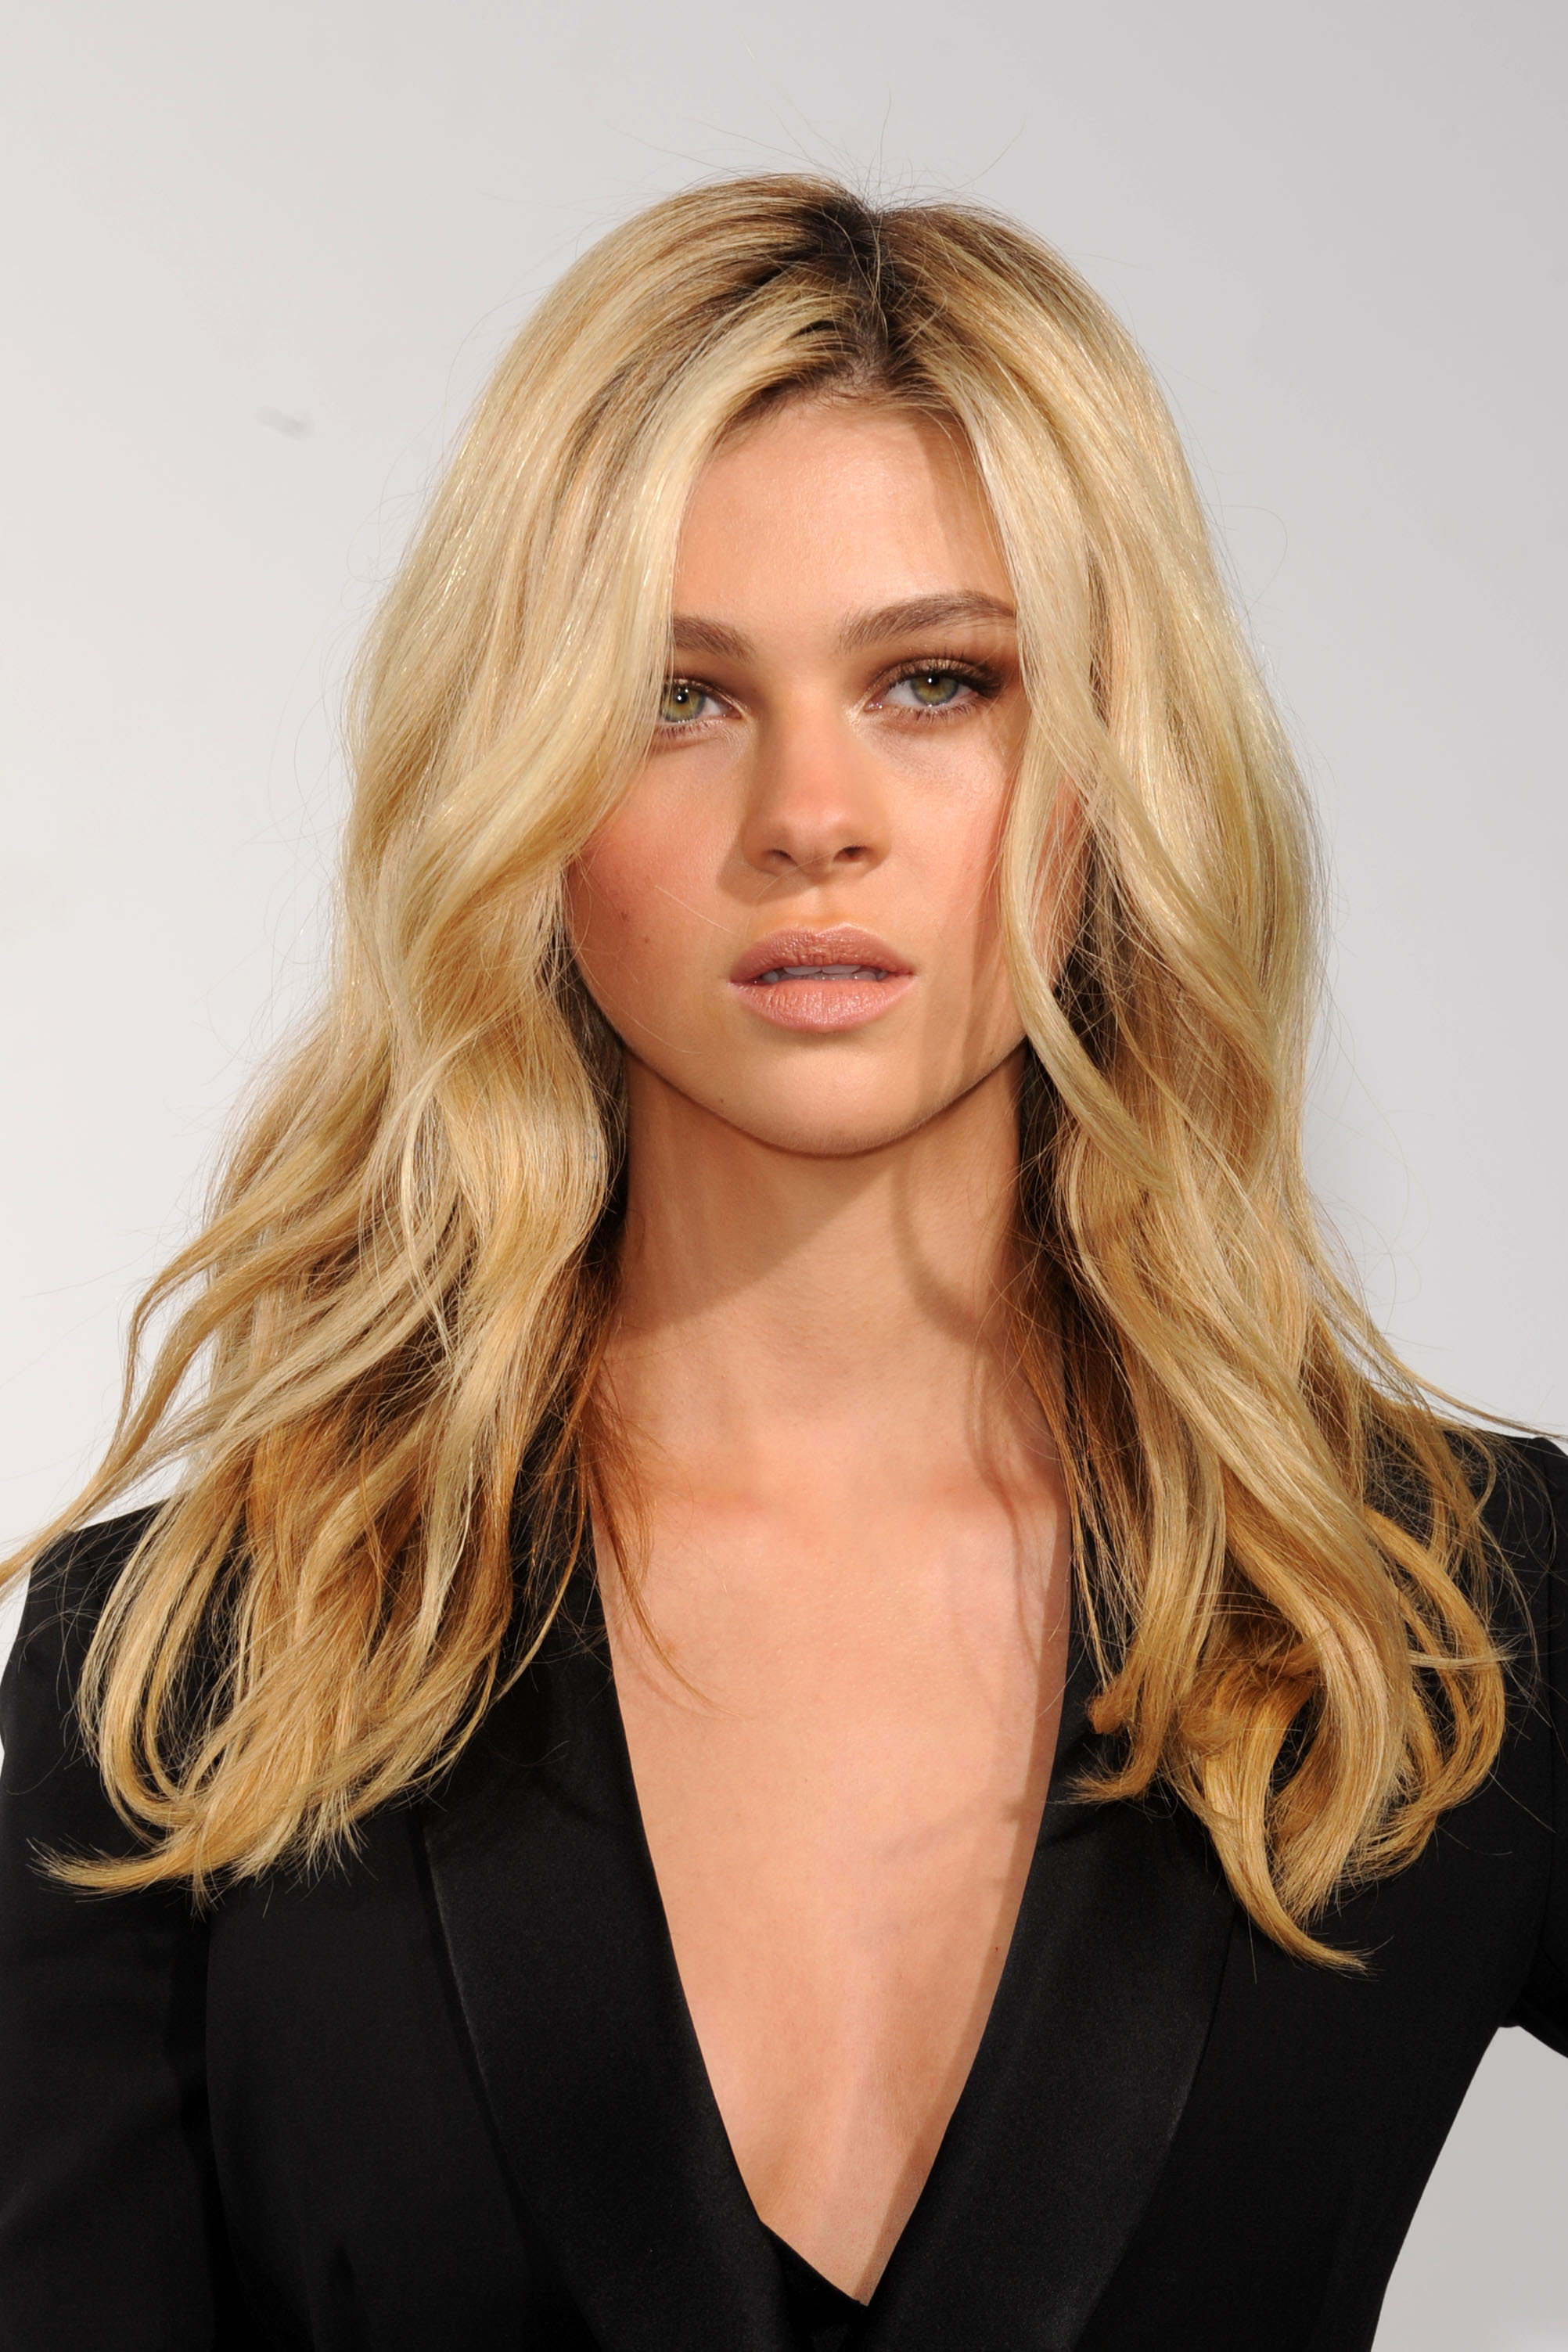 Pretty Blonde Teen Stock Image Image Of Pretty Strap: Nicola Peltz Pictures Gallery (6)